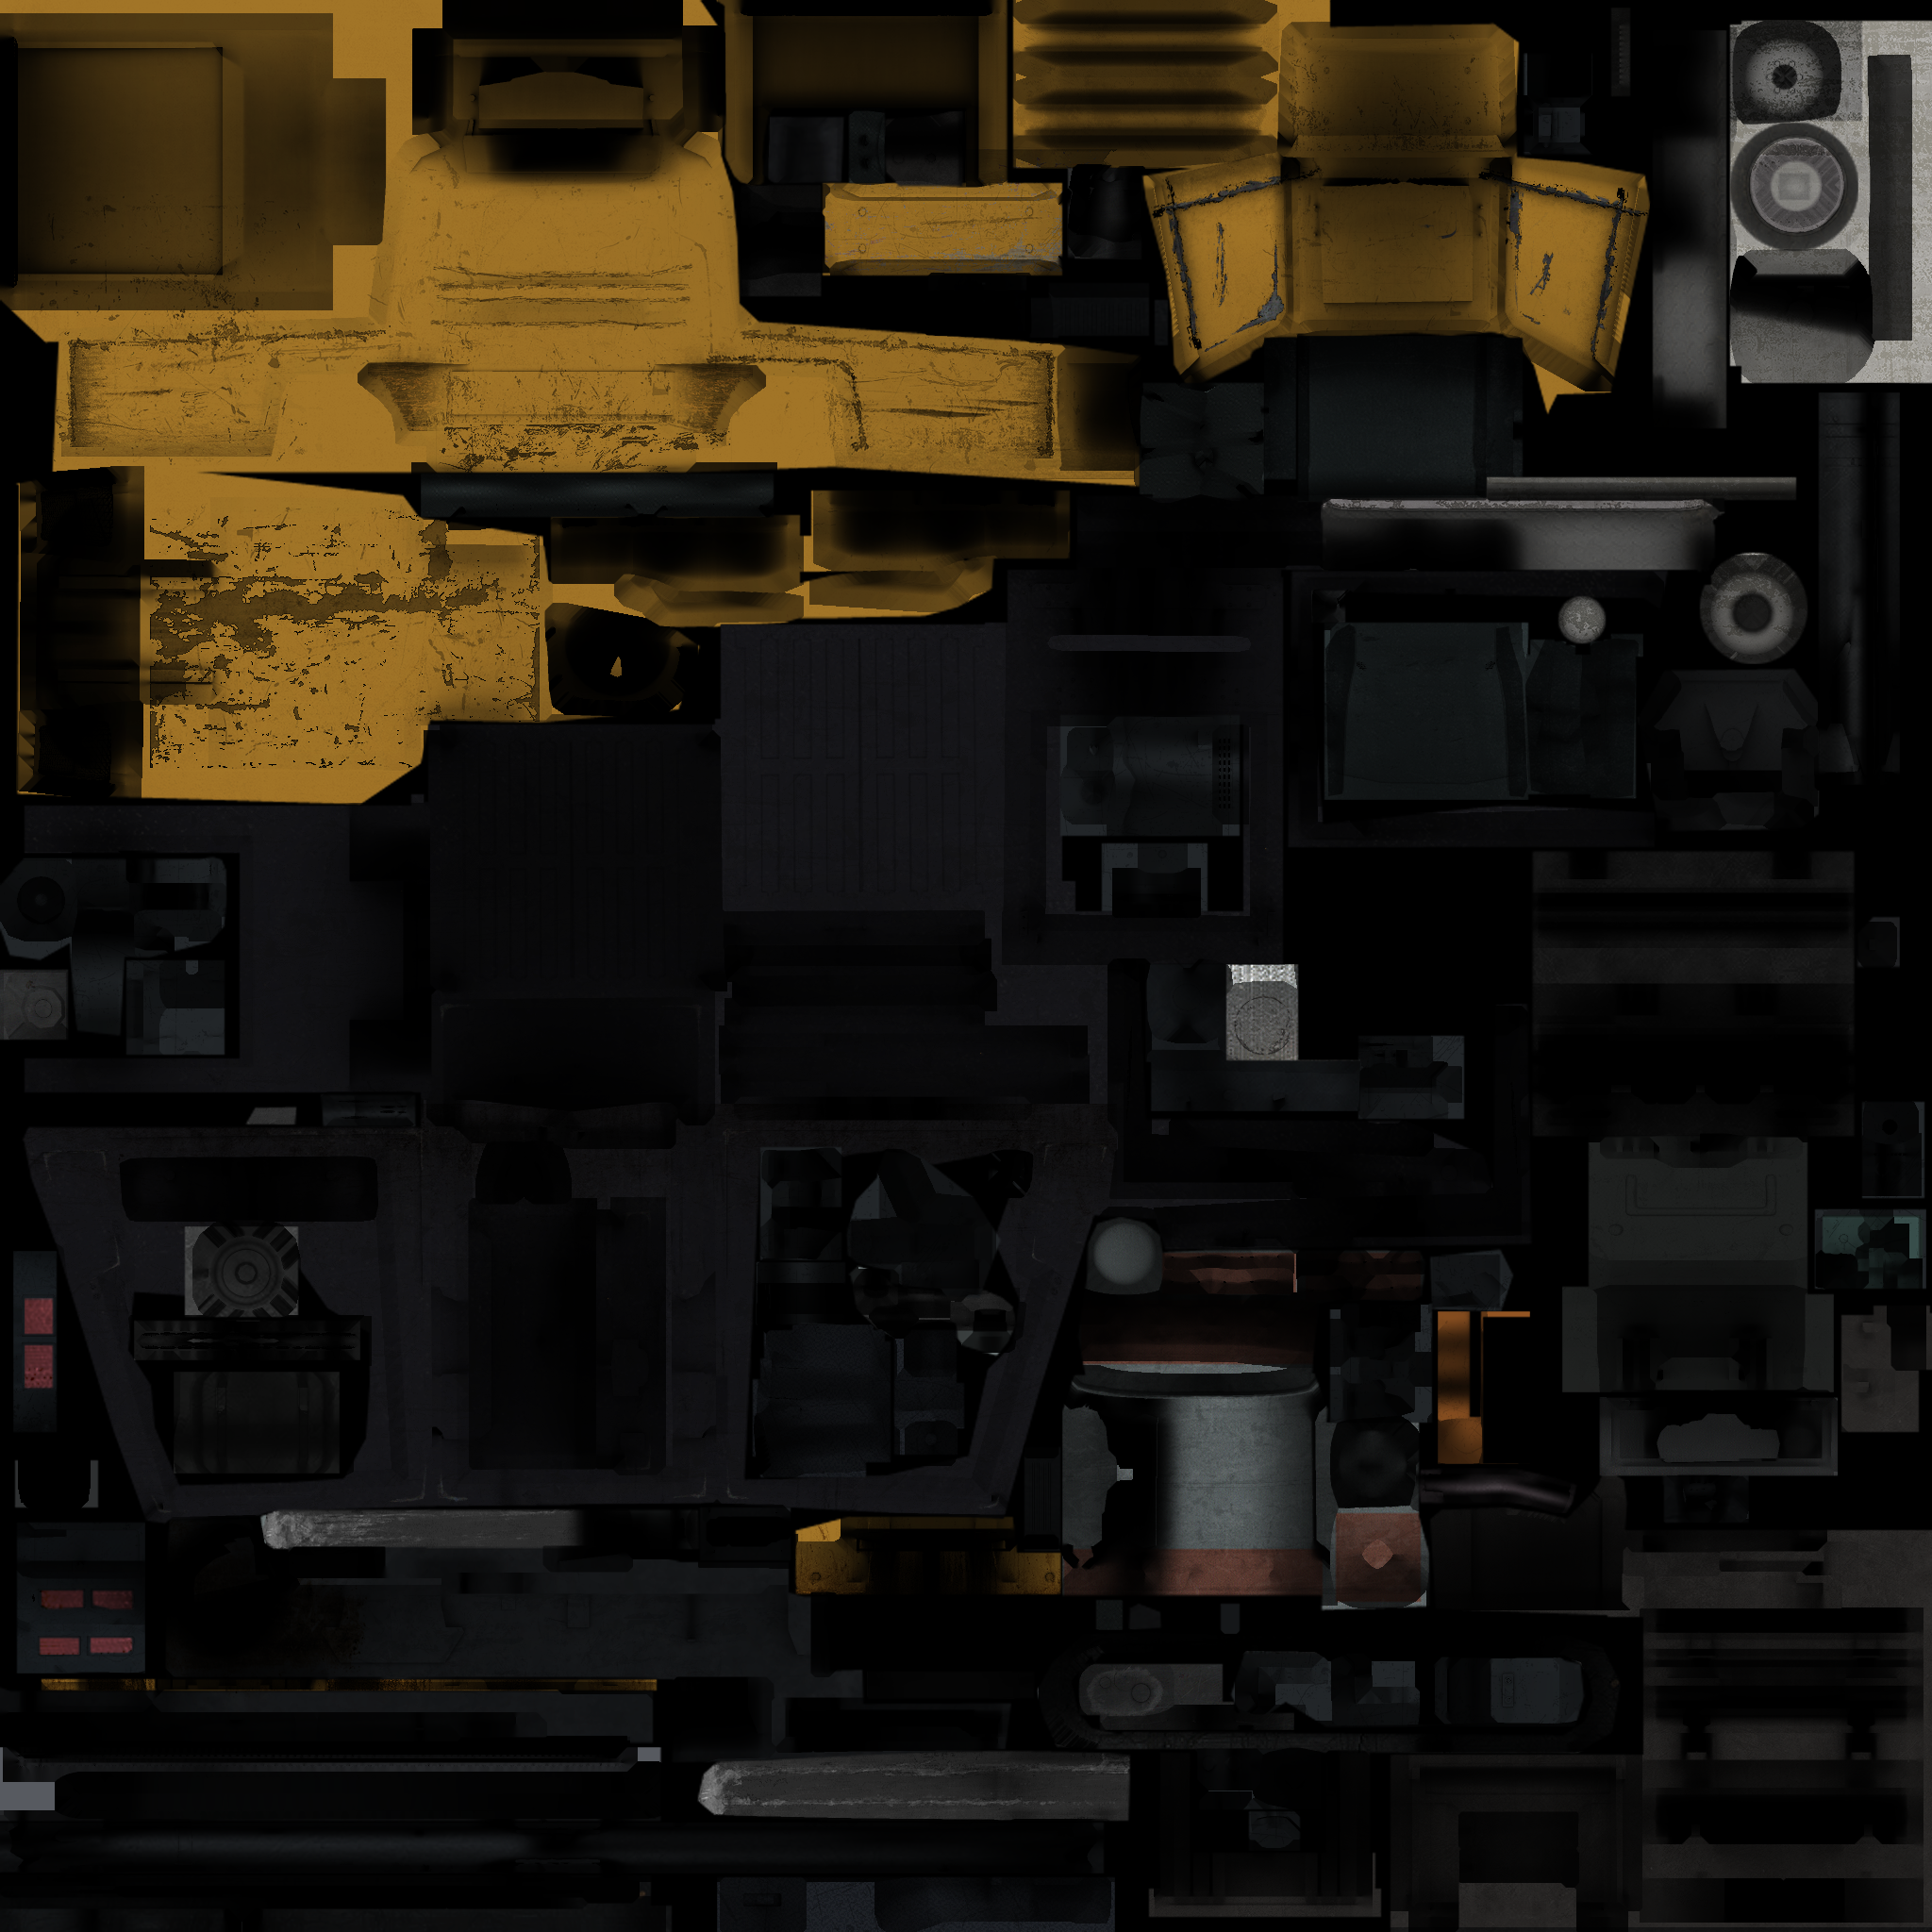 Forklift_diffuse.png